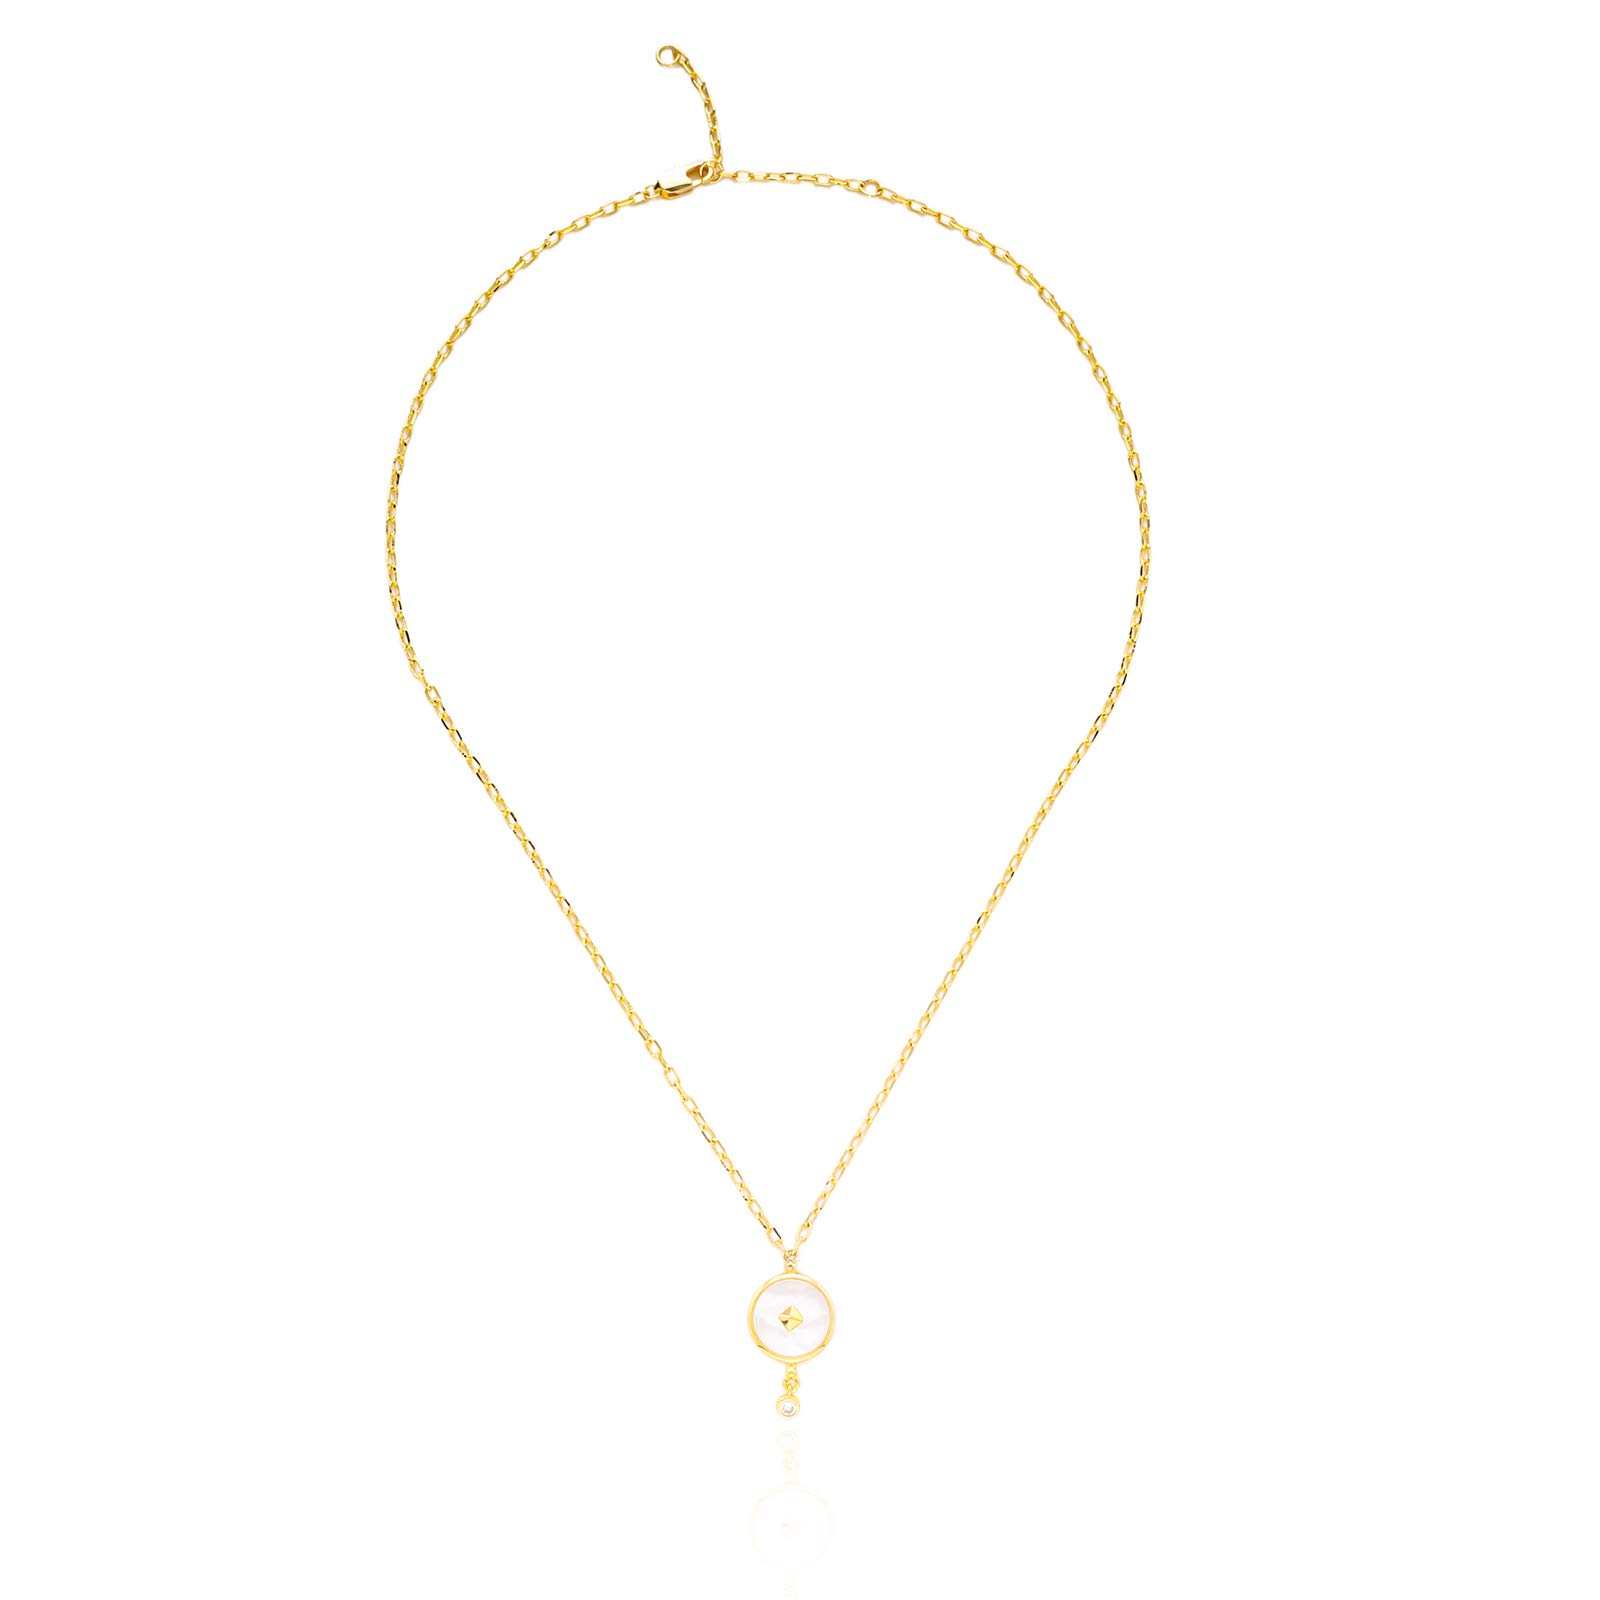 Clothing accessories fashion necklace Retro exquisite Y-shaped women's necklace round center small pendant